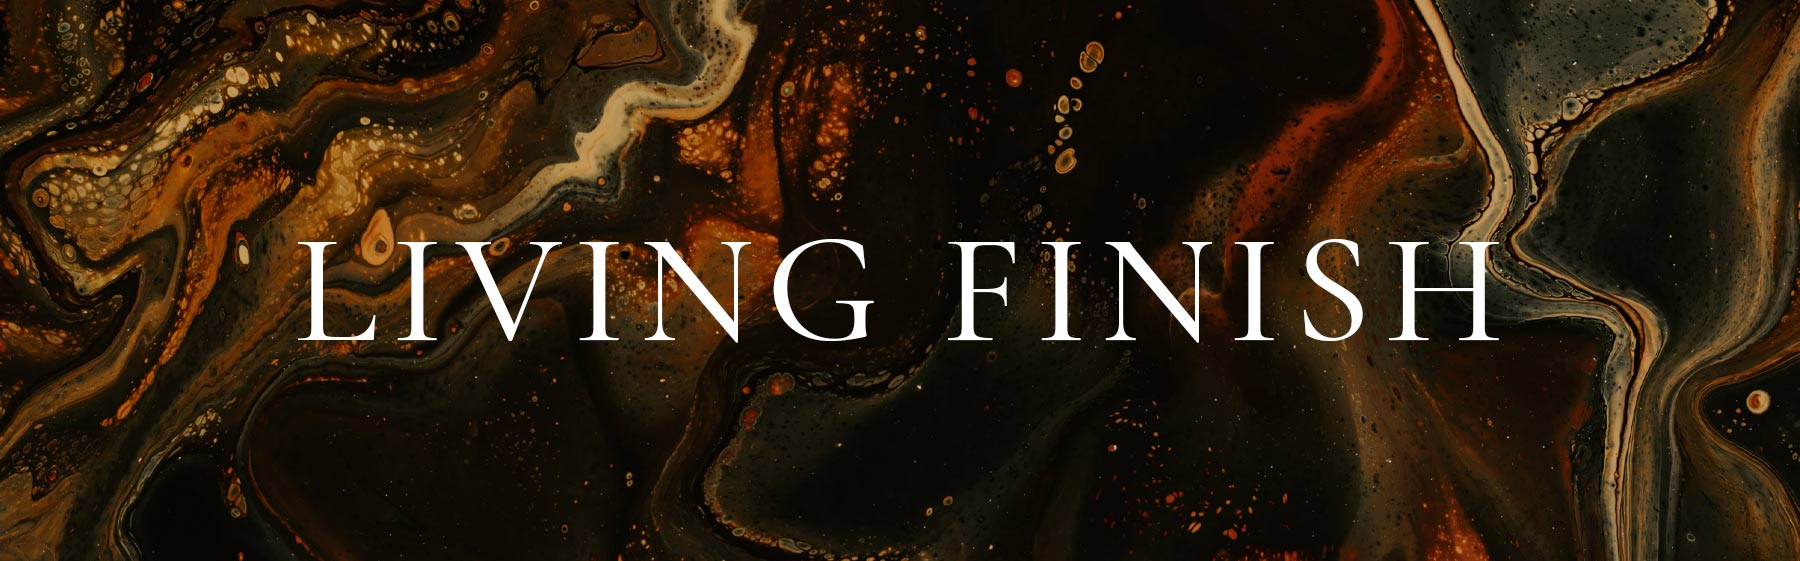 Living Finish Product Banner